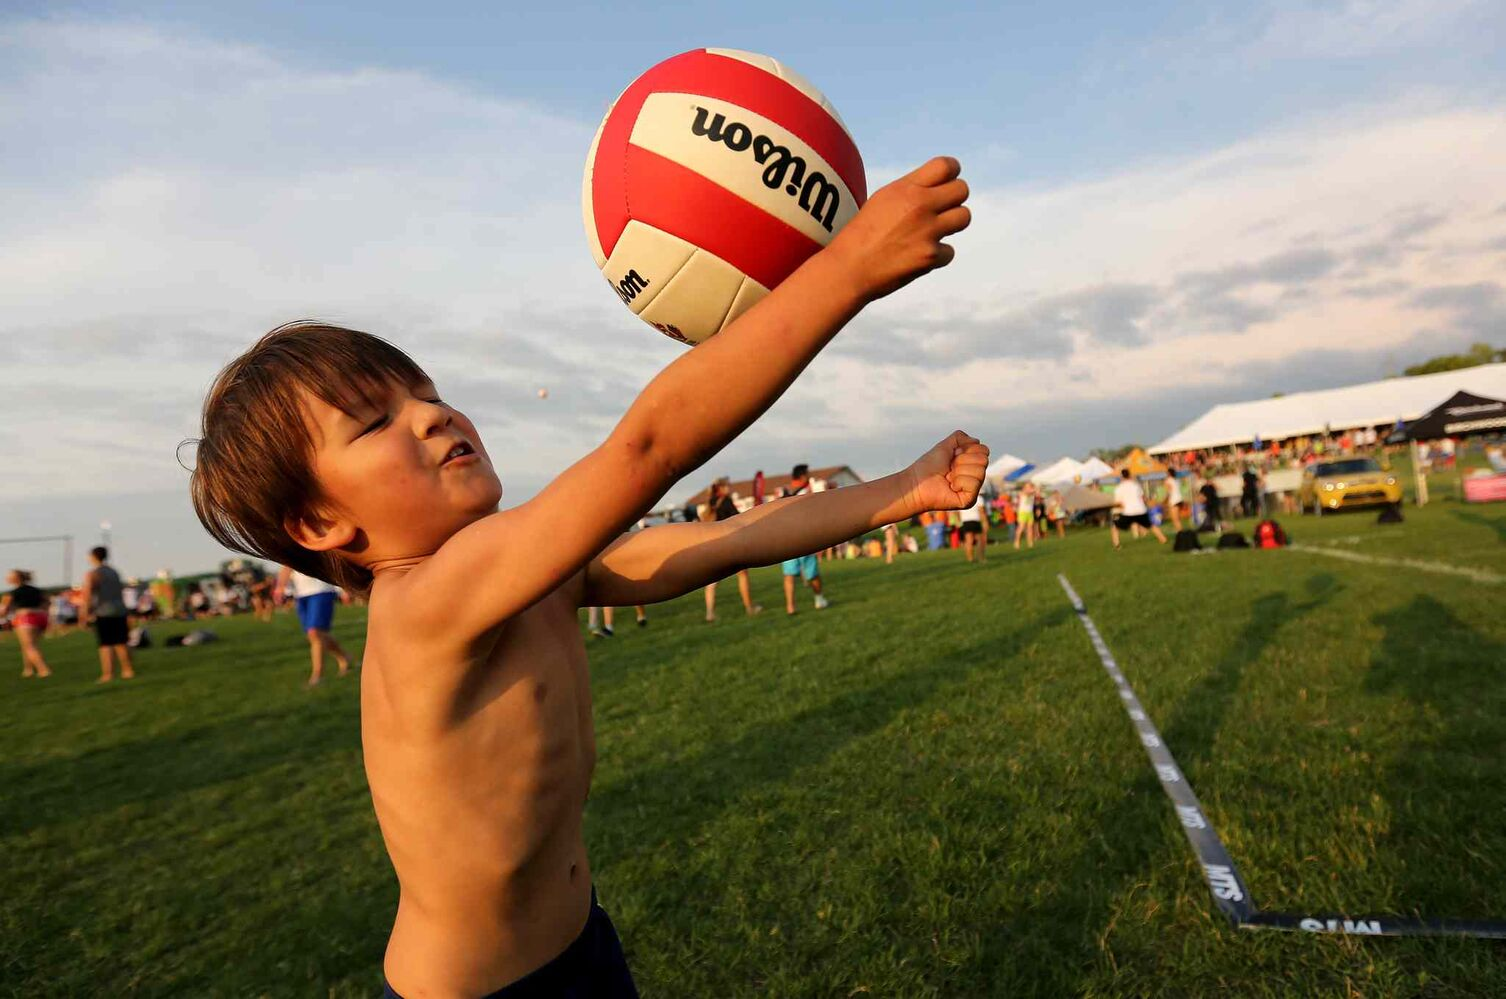 Alexander Schinkel, 3, playing with a ball at the Super-Spike volleyball tournament at Maple Grove Rugby Park, Friday, July 18, 2014.  (TREVOR HAGAN/WINNIPEG FREE PRESS)